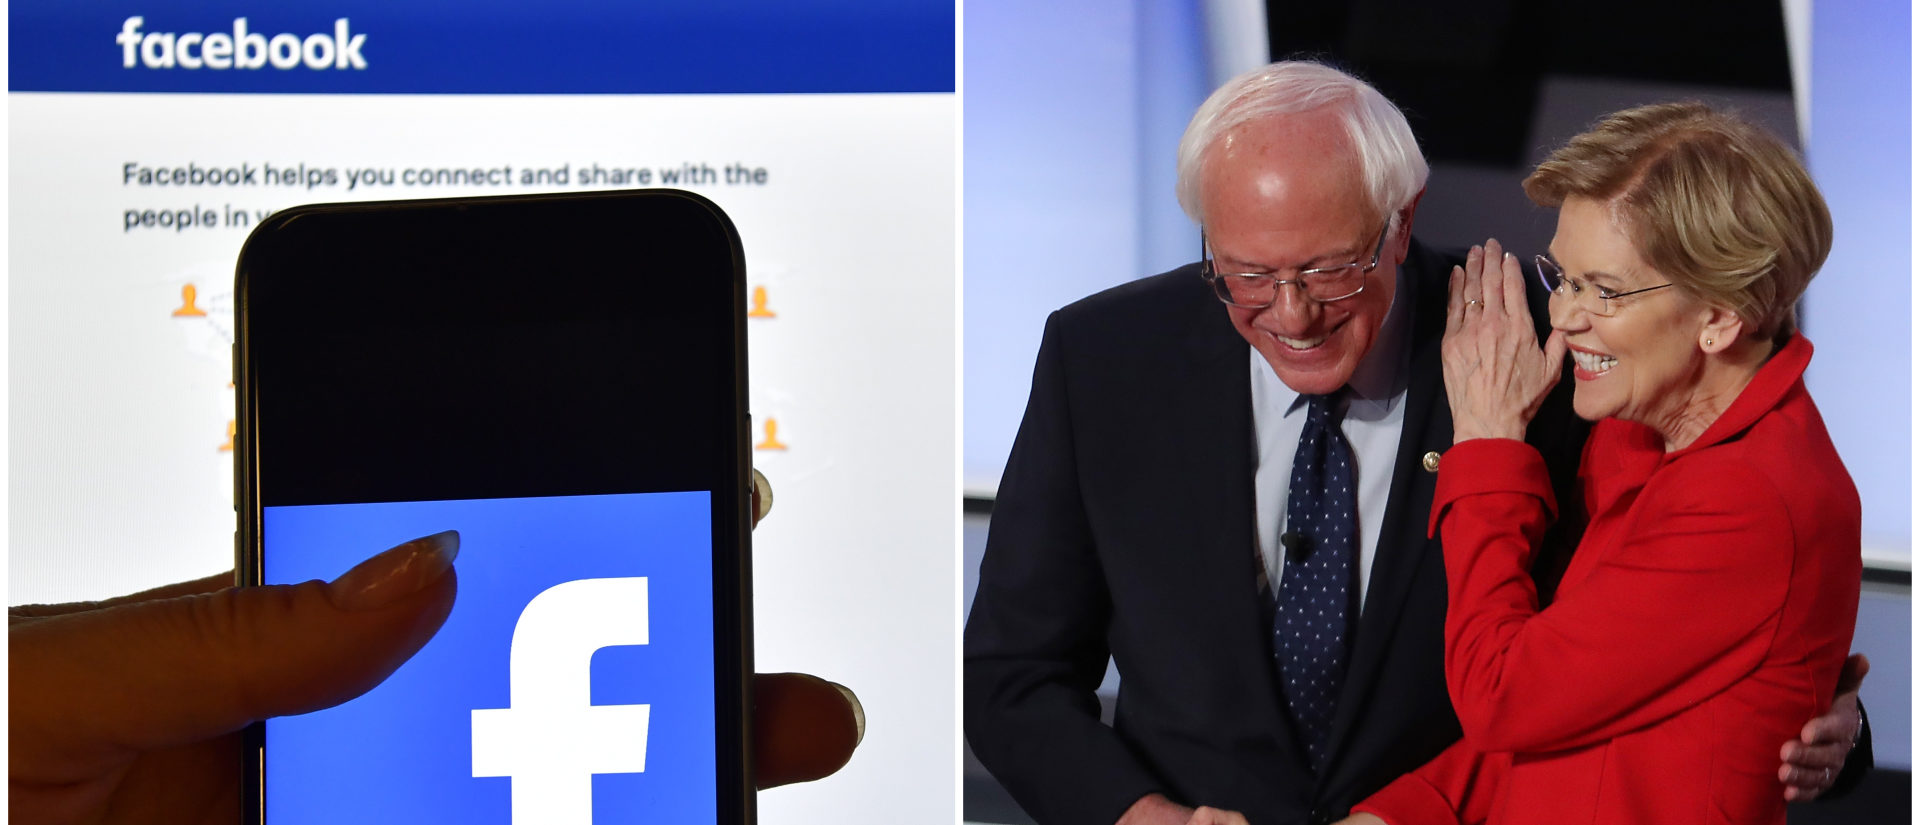 Facebook, Warren and Sanders side-by-side/ Getty Images collage